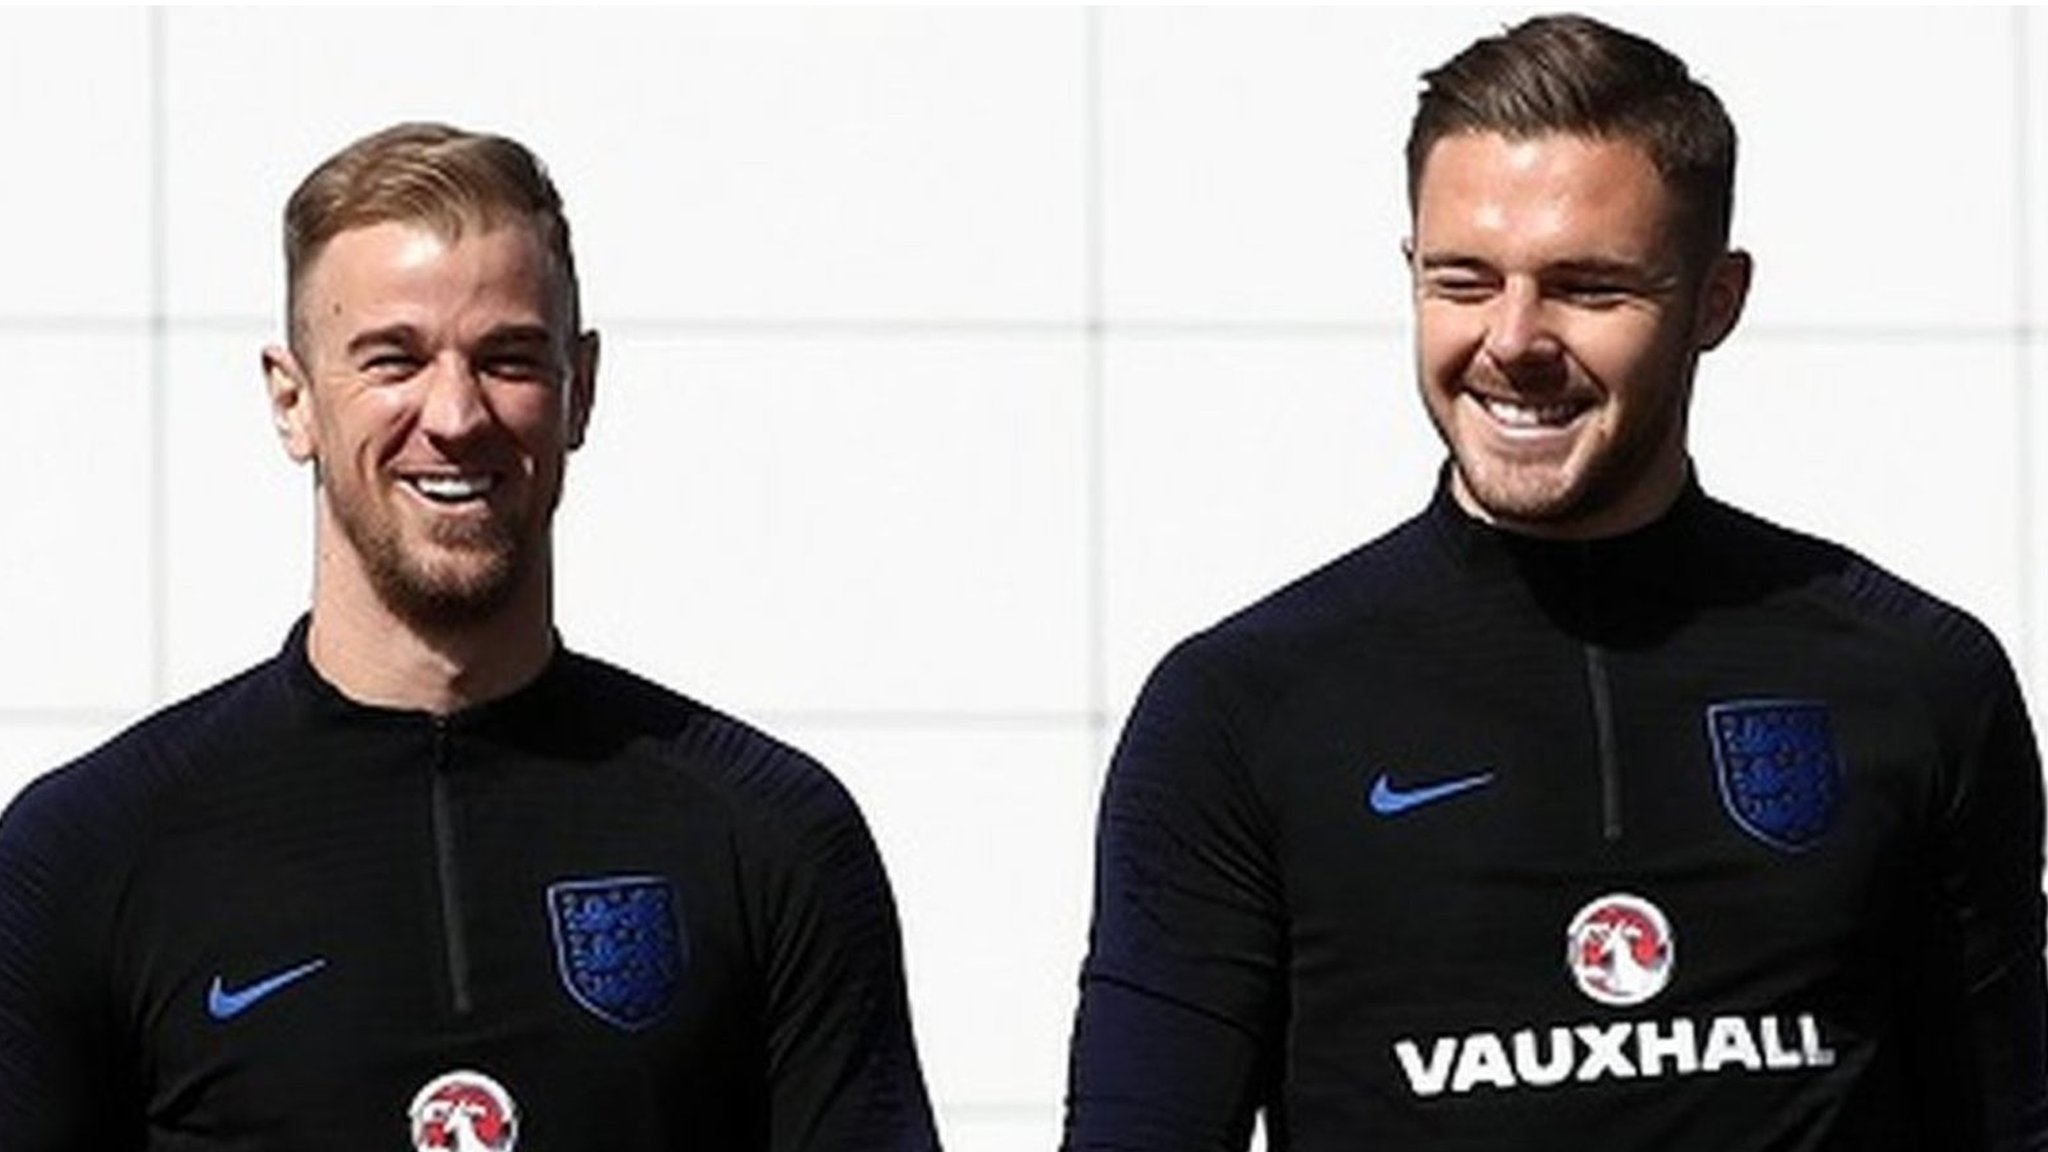 World Cup: Jack Butland spoke to 'hero' Joe Hart after England omission